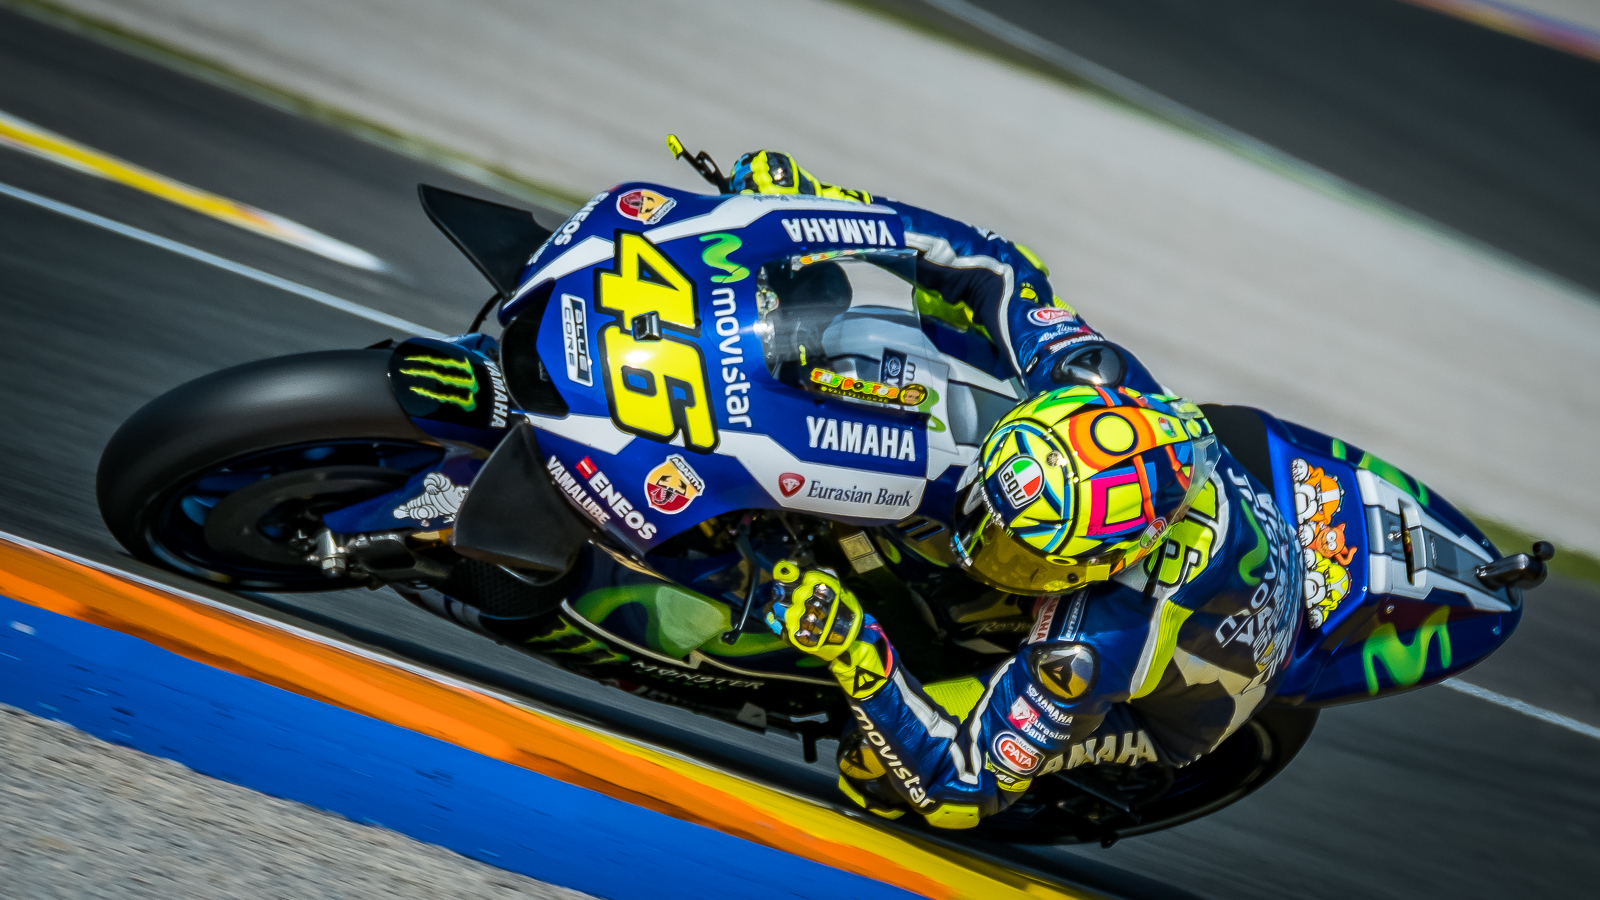 Moto Gp, Gallery, Rossi, German Vidal